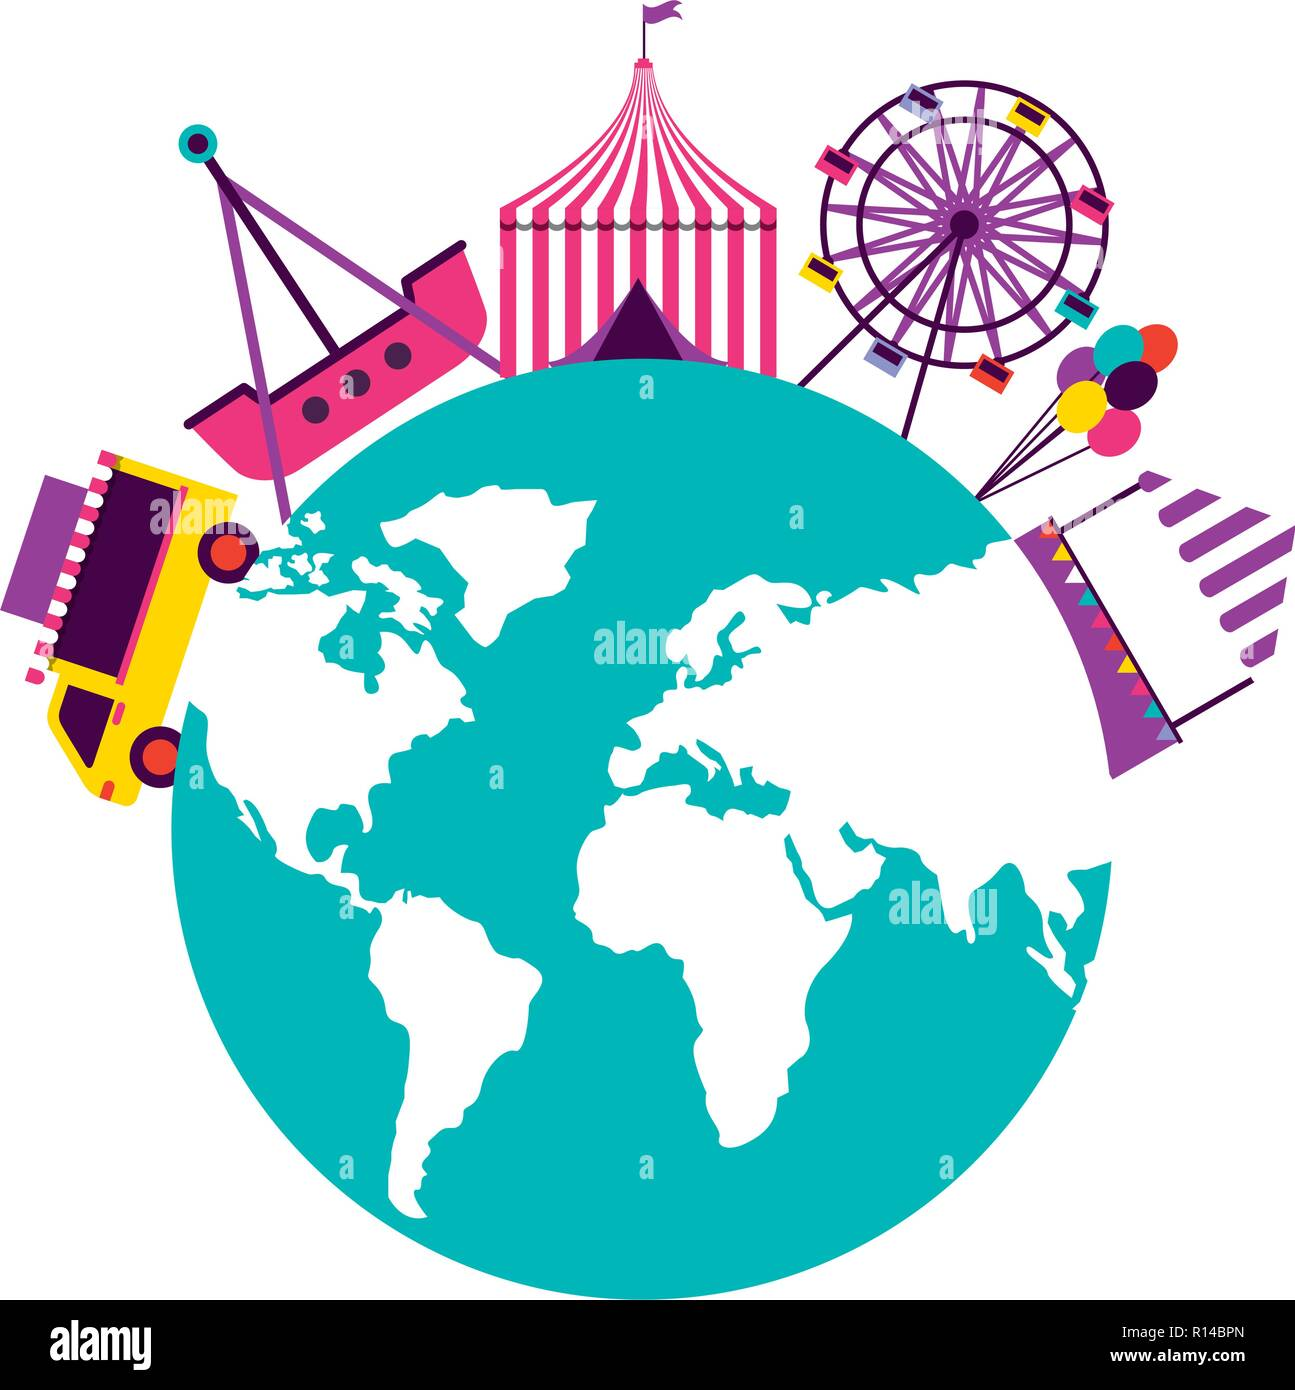 world tent balloons truck food fun fair carnival vector illustration - Stock Vector